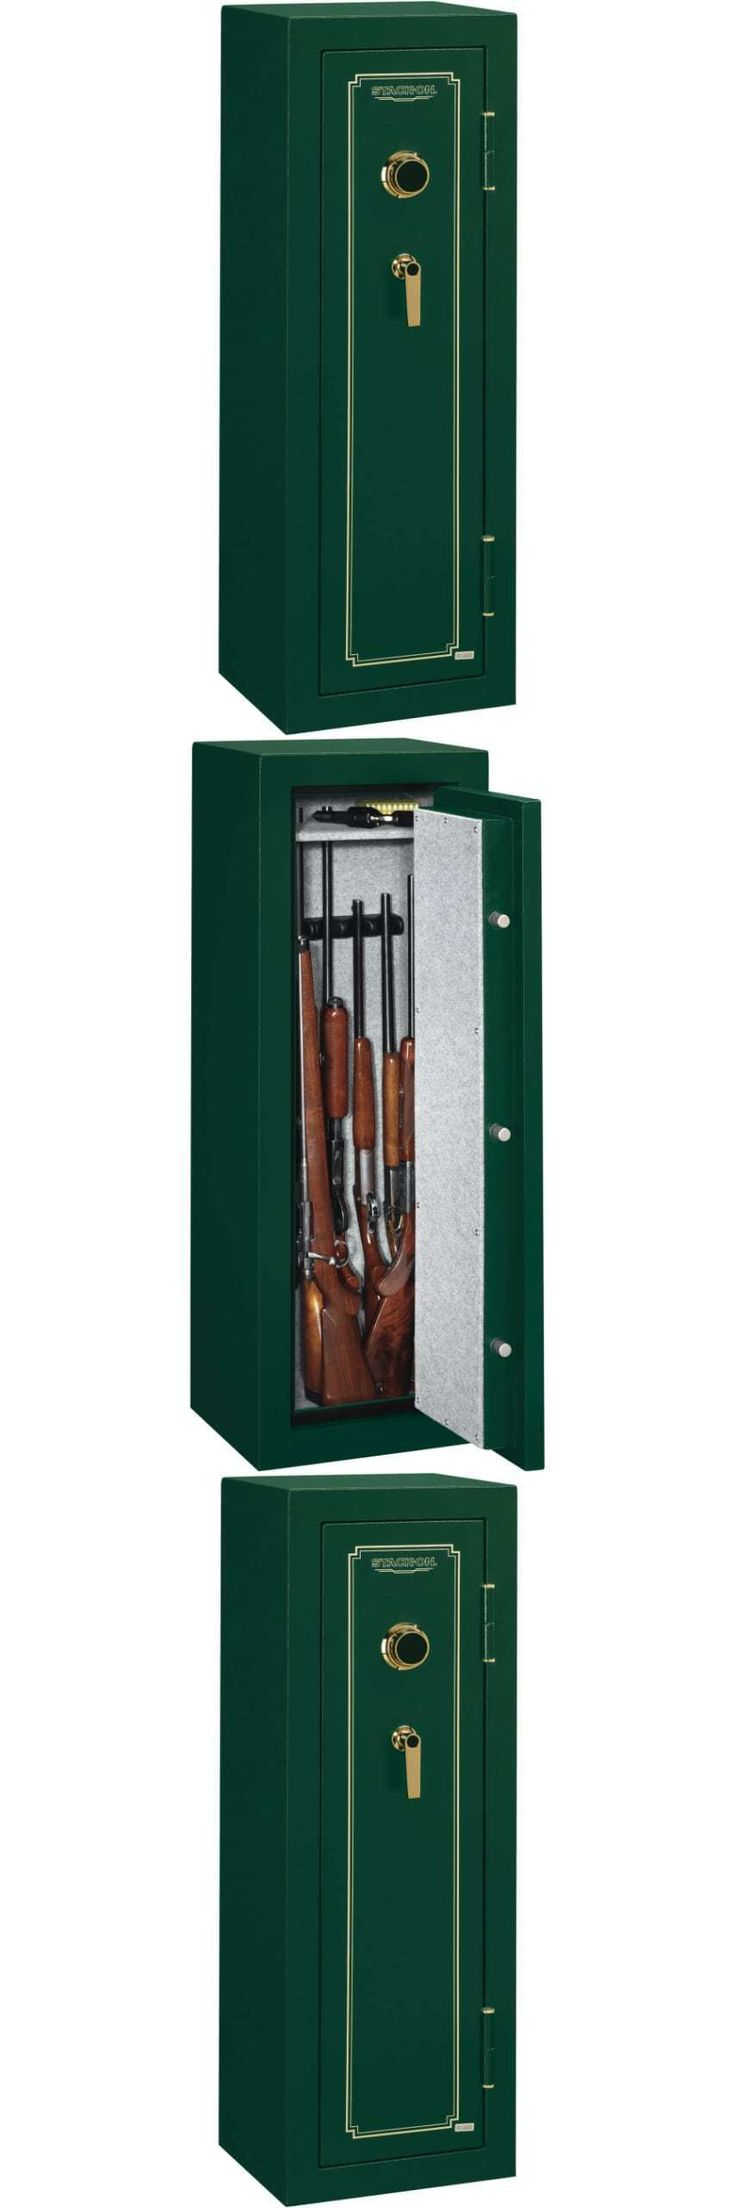 Cabinets and Safes 177877: Stack-On 8 Gun Fire Resistant Security Safe With Combination Lock Fs-8-Mg-C Hunt BUY IT NOW ONLY: $399.37